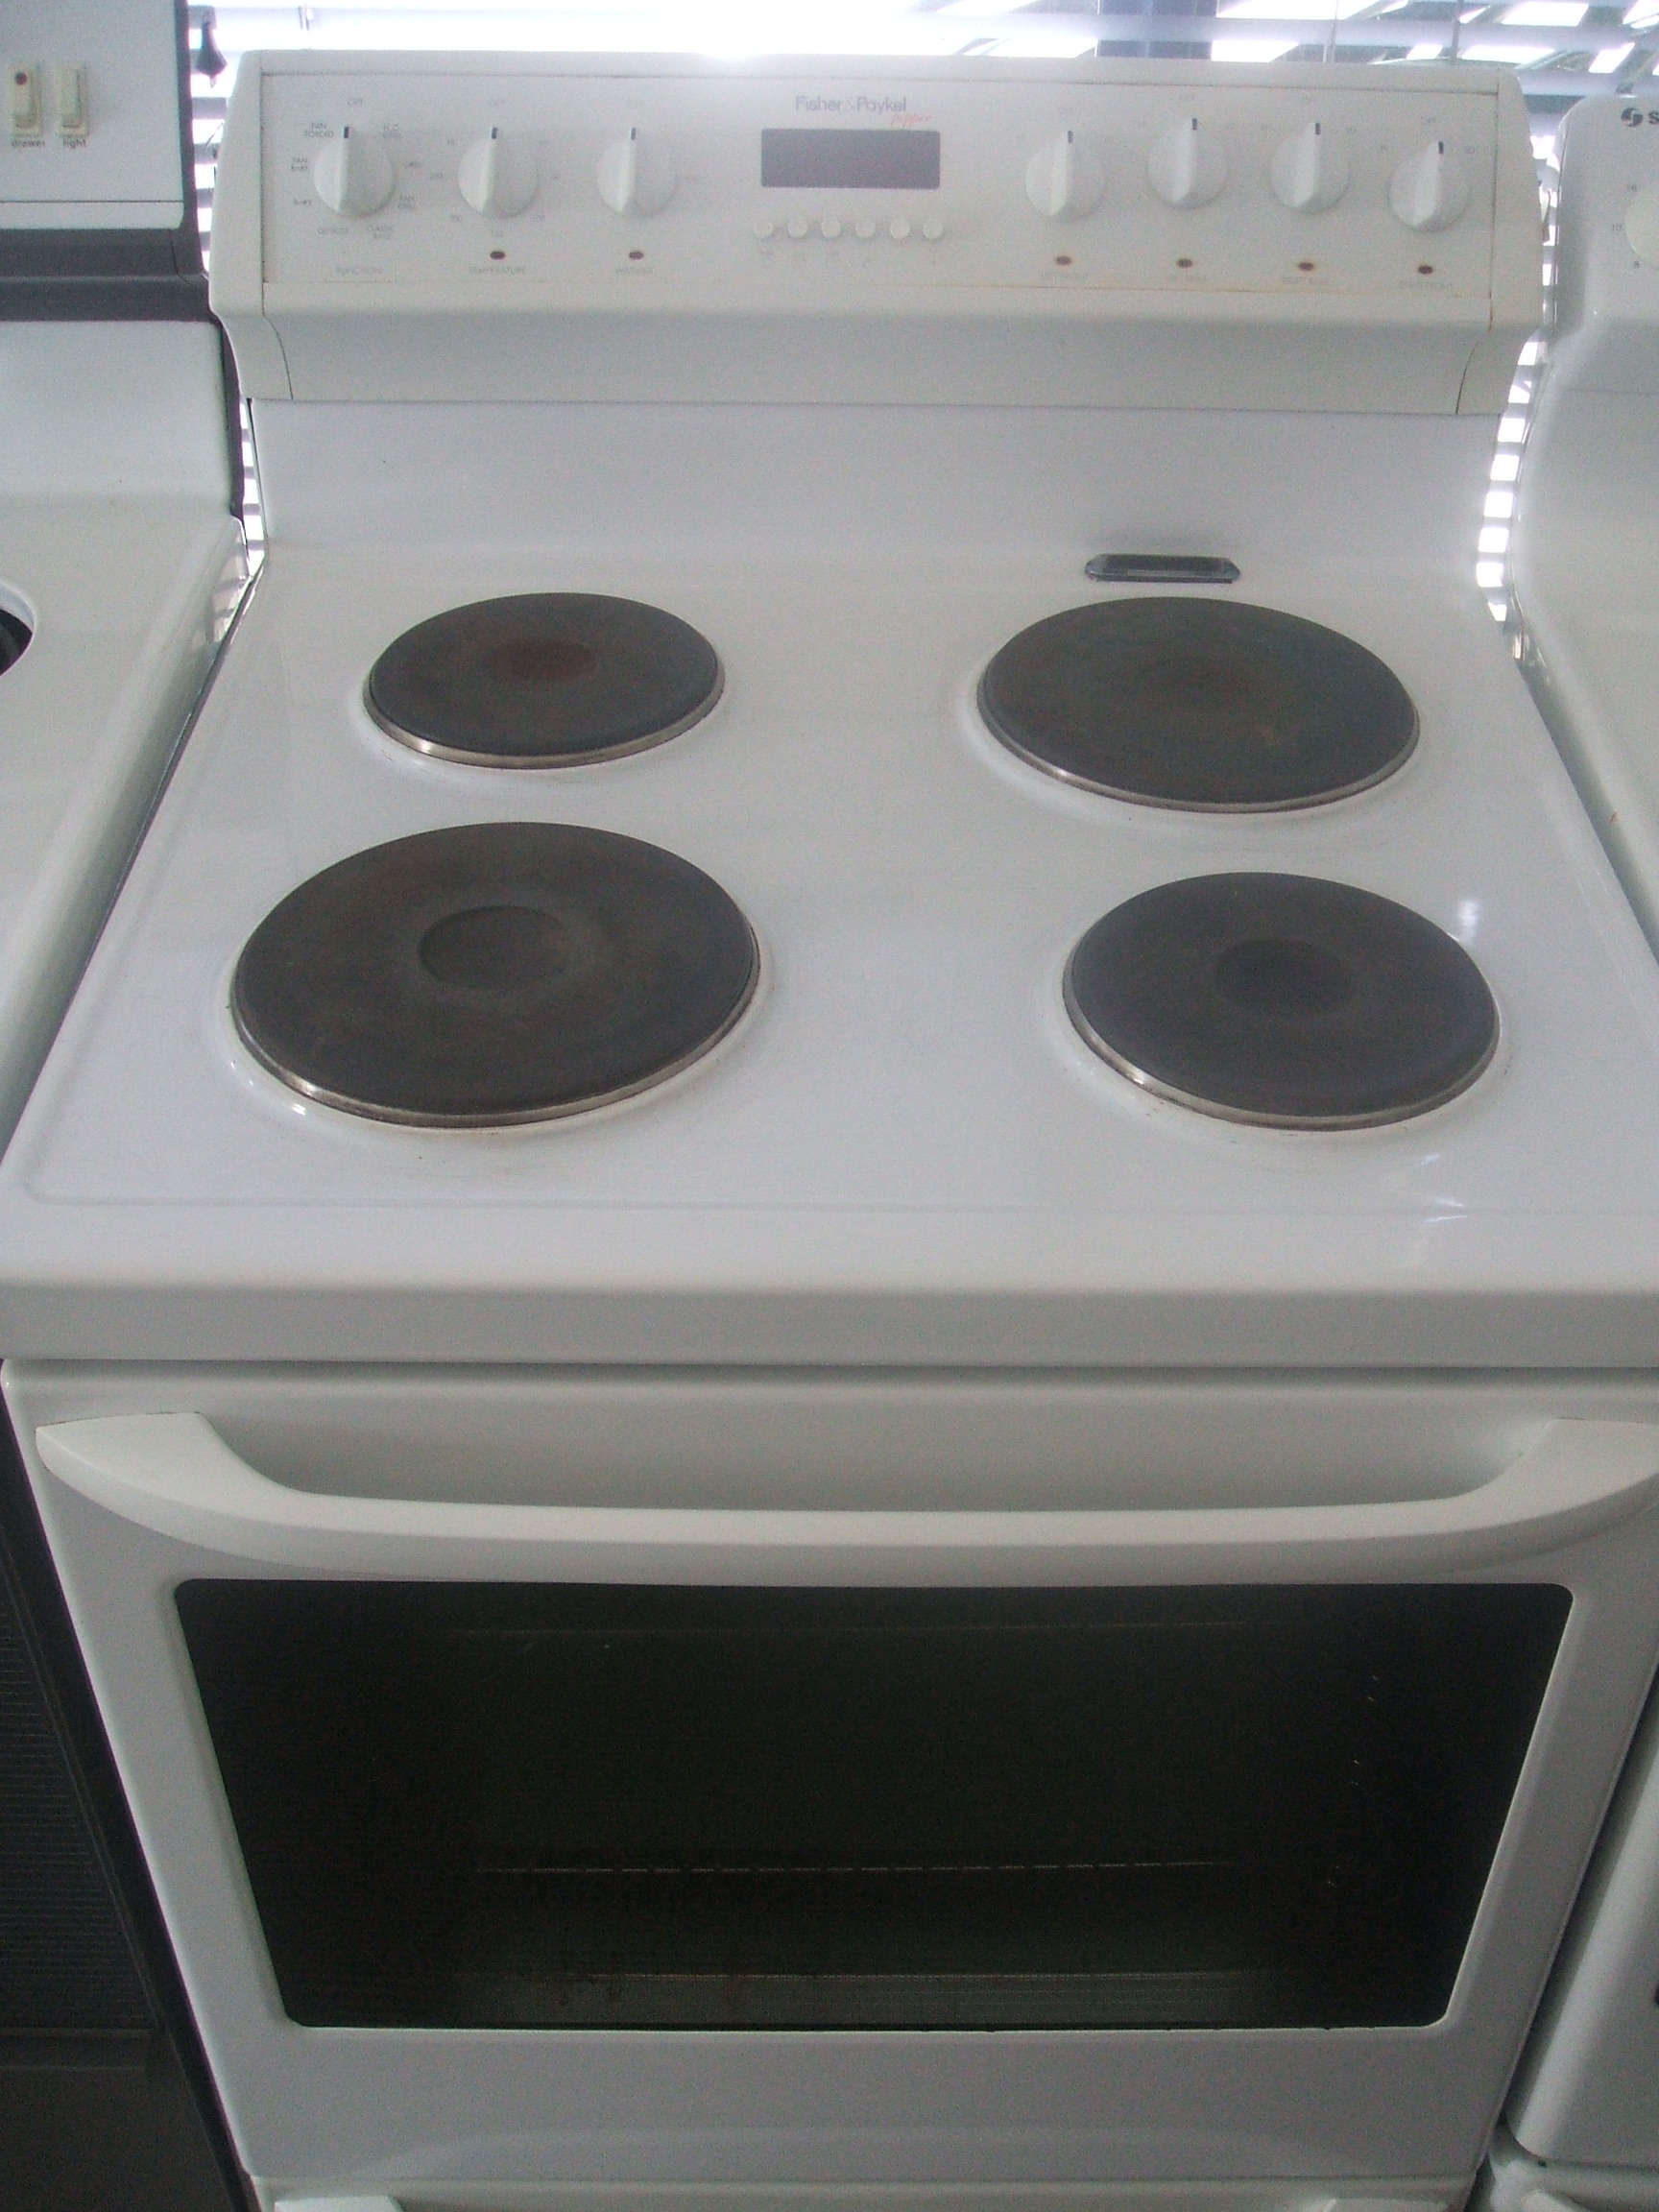 Stoves|Very Clean and Tidy. Guaranteed. | Best Appliances